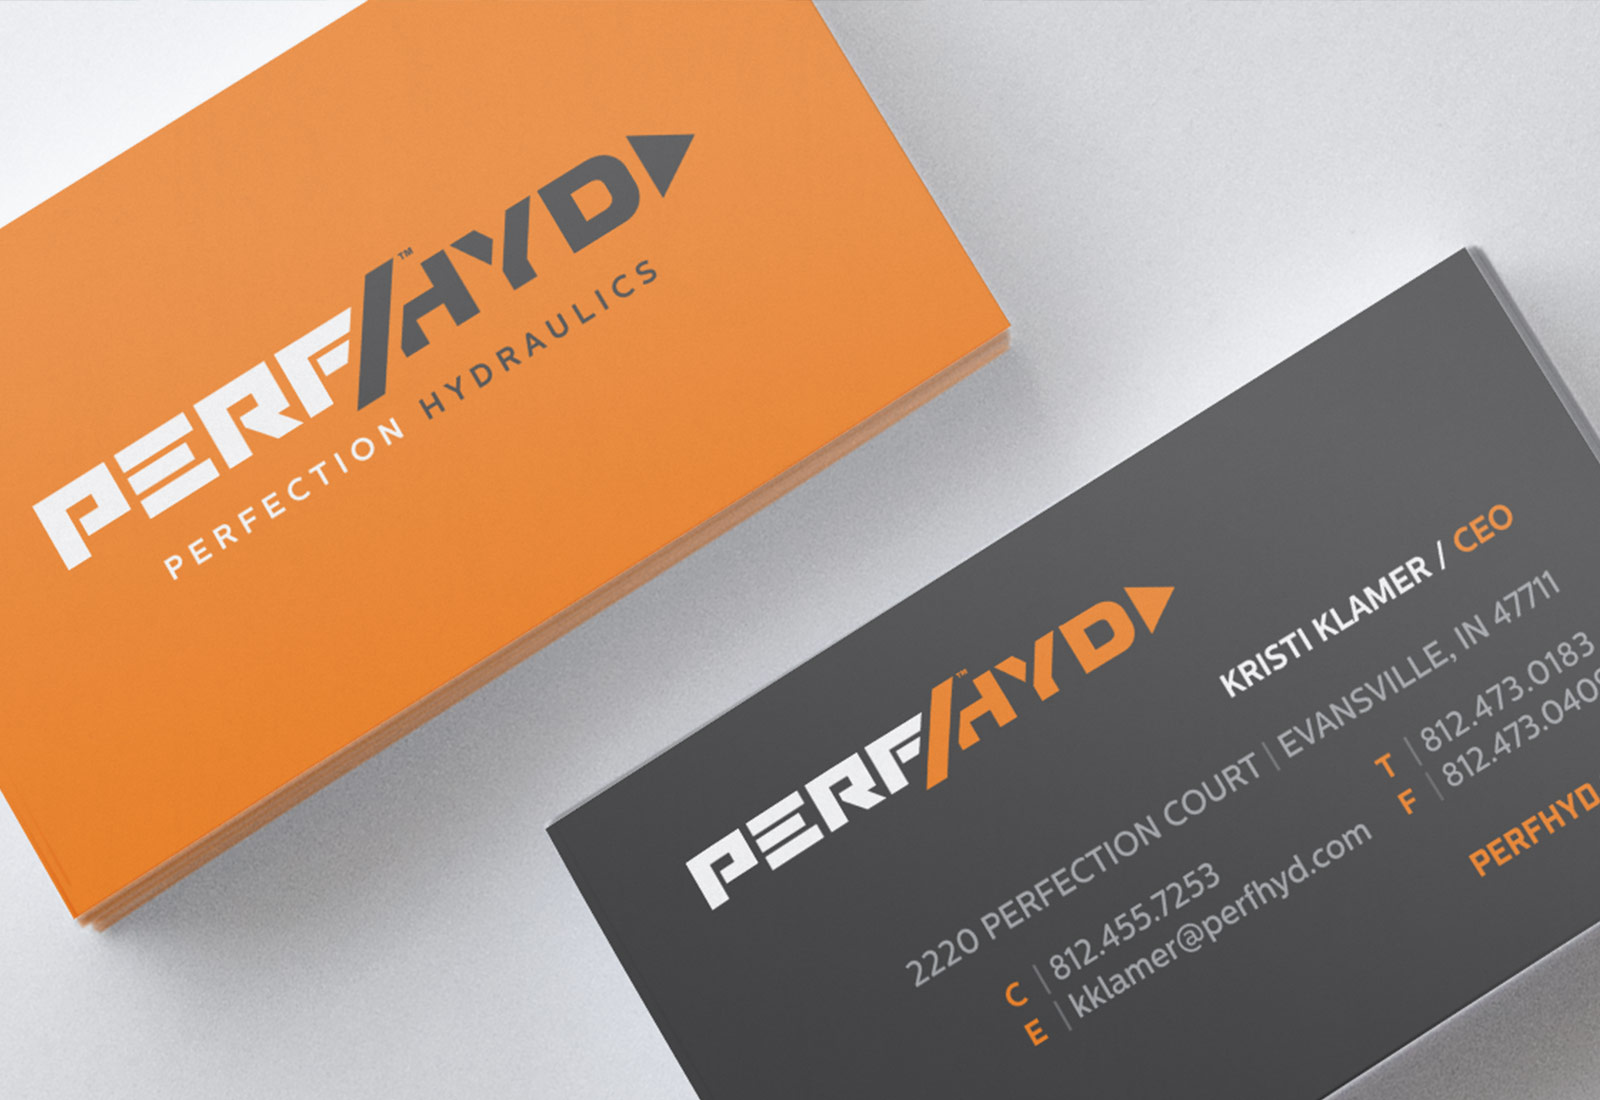 Business Card Design and Printing for Perfection Hydraulics Company in Evansville